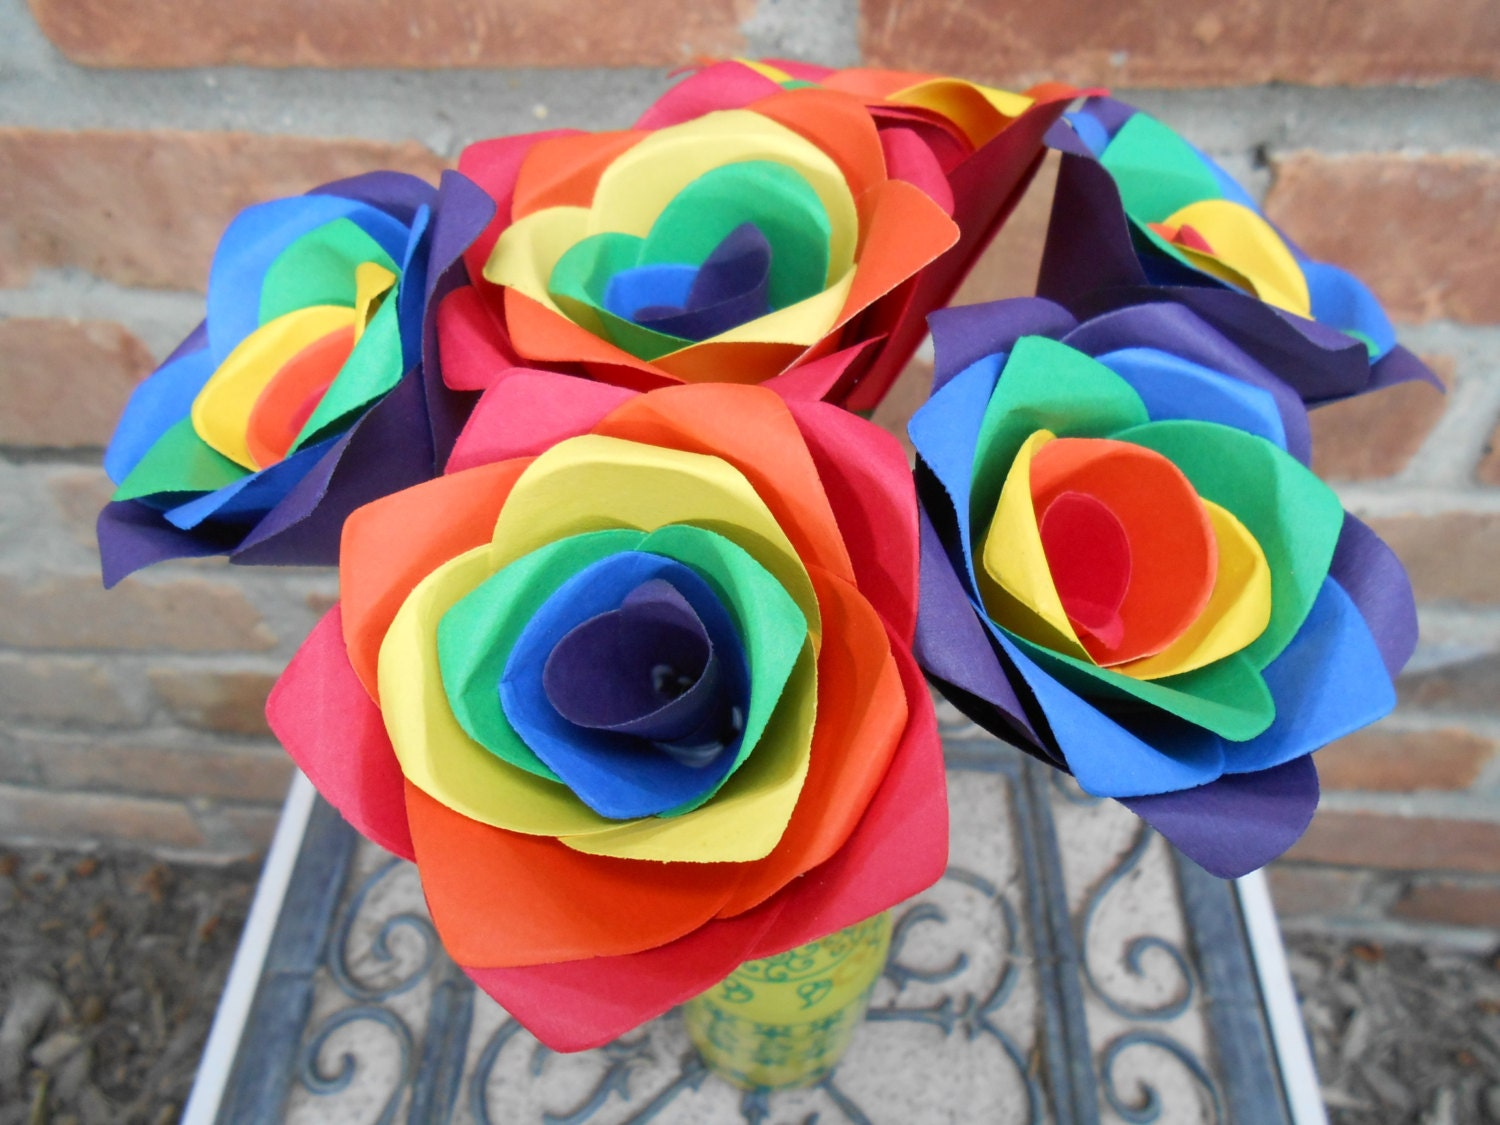 Rainbow Roses Half A Dozen. Red Orange Yellow Green Blue